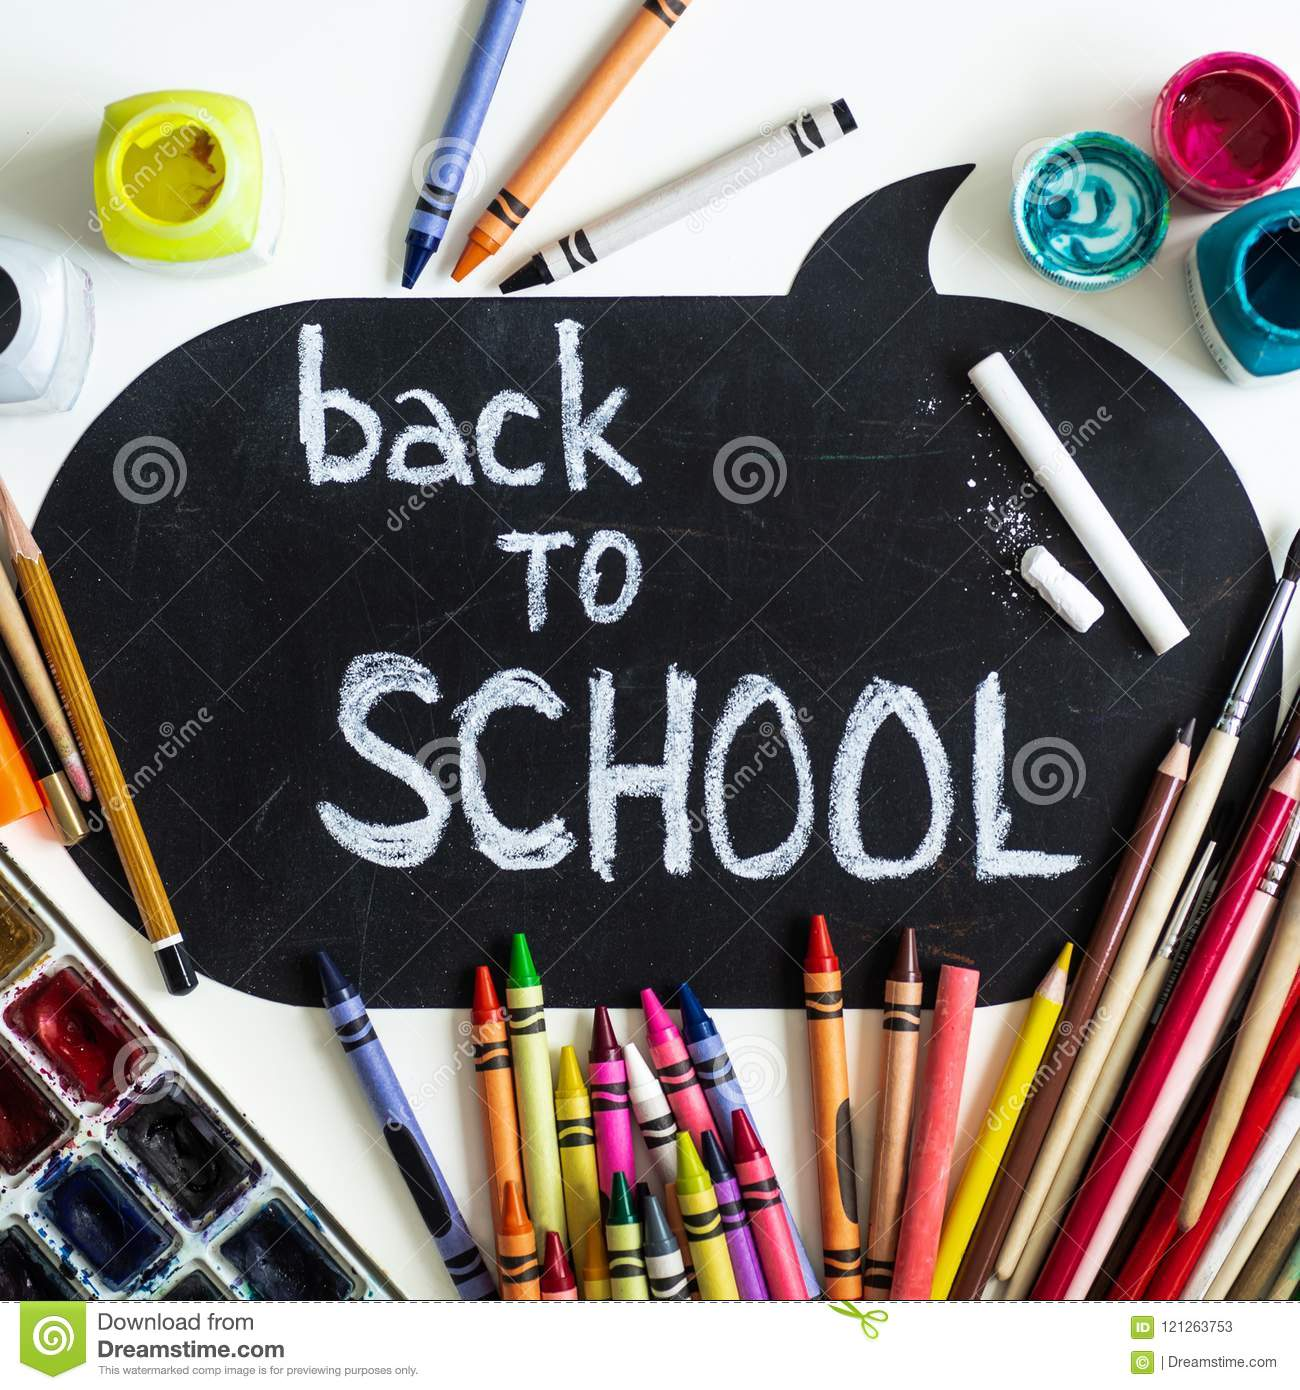 Back to School chalkboard tag with school supplies on blackboard background. Ready for your design. Back to school concept